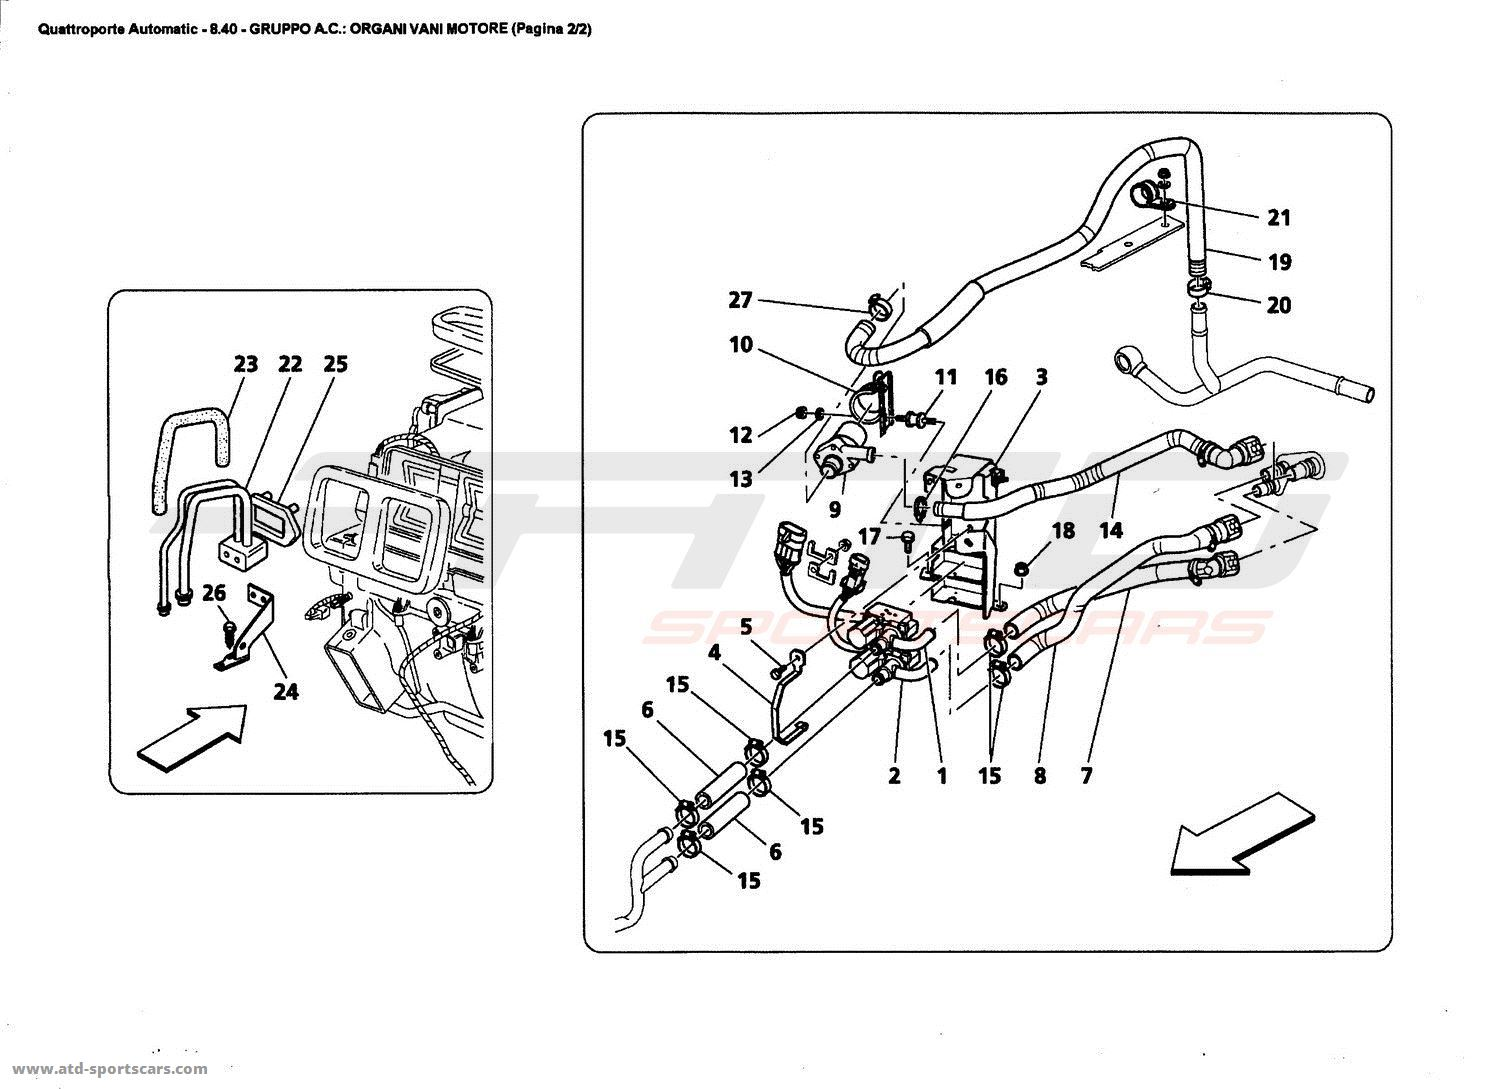 Maserati Spyder Wiring Diagram Simple Circuit Battery Auto Quattroporte Engine Diagrams